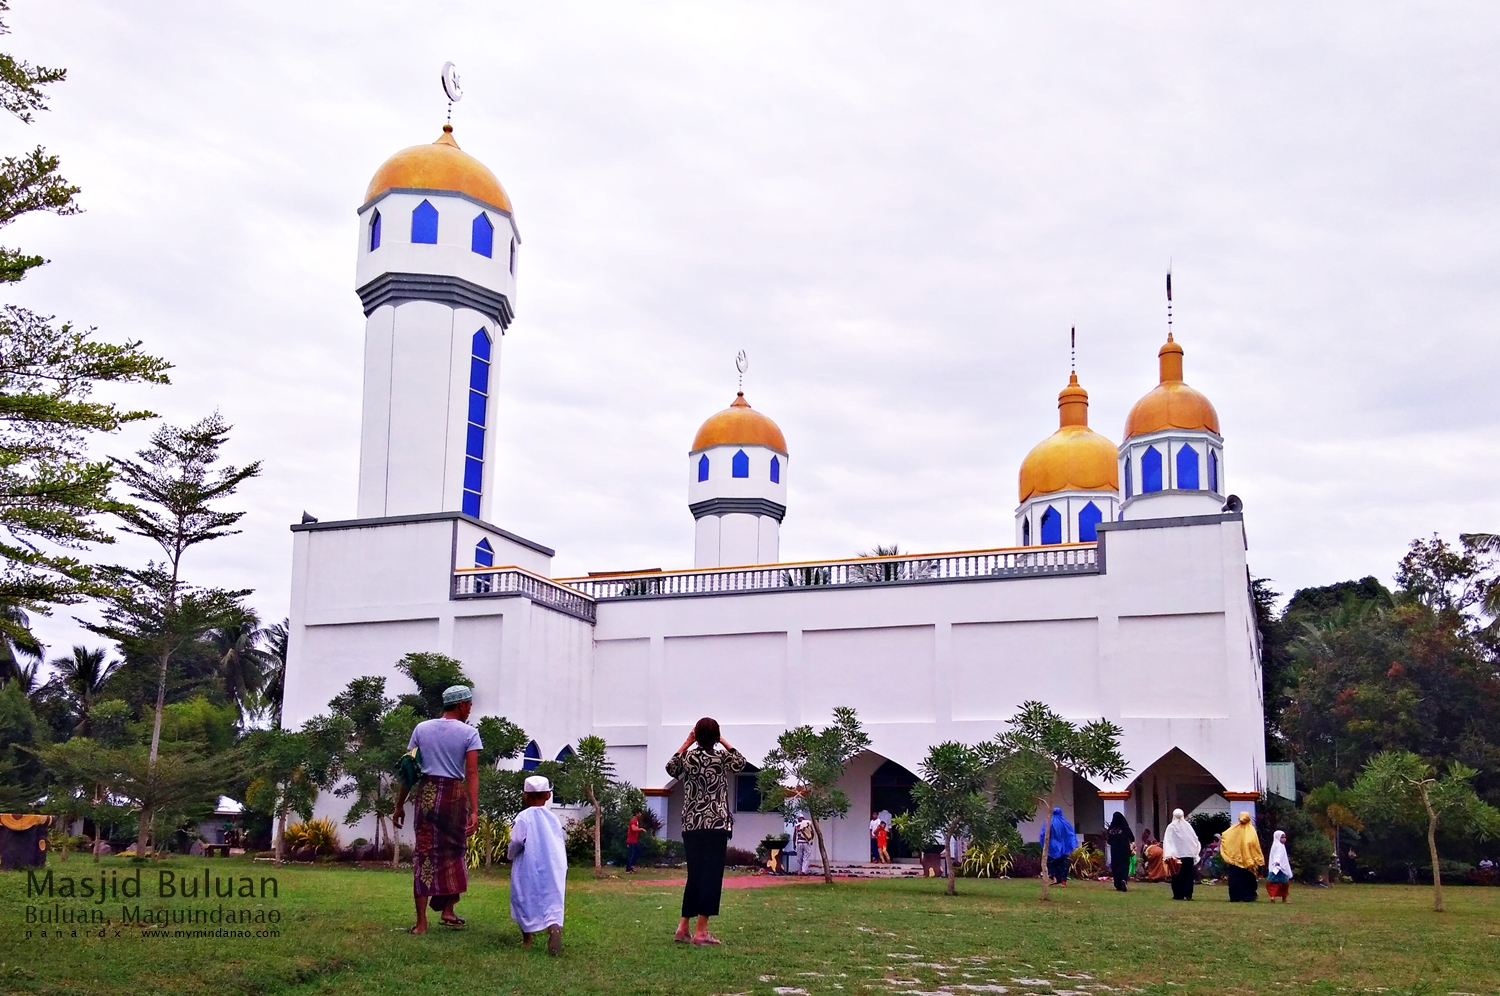 Masjid Buluan, the biggest mosque in Buluan, Maguindanao